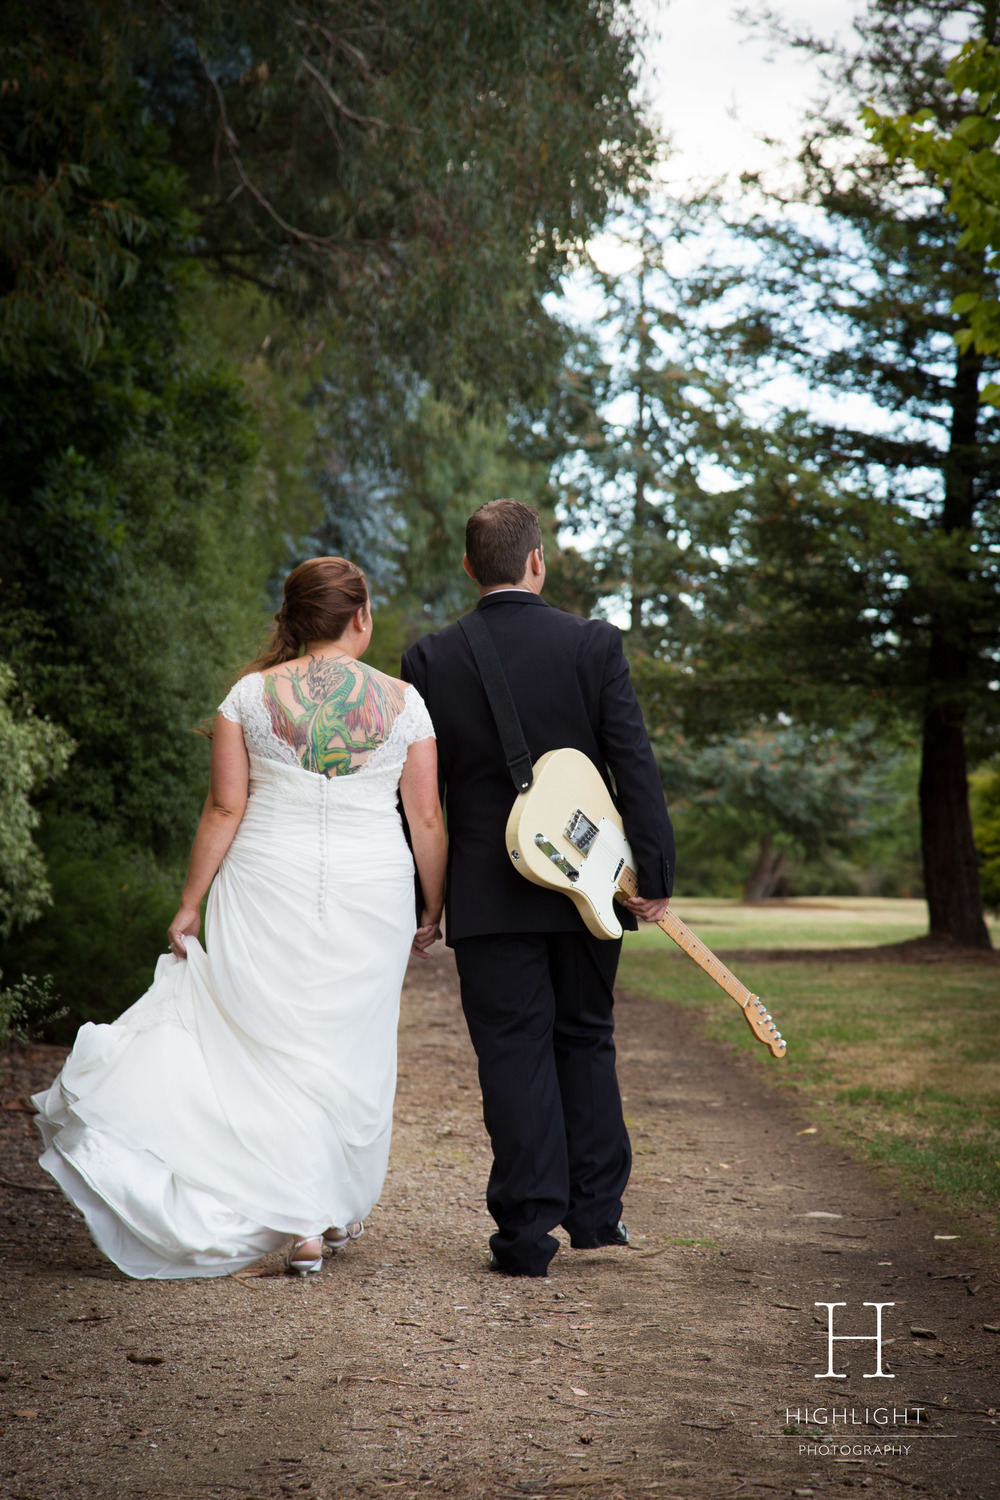 highlight_photography_wedding_masterton_guitar.jpg